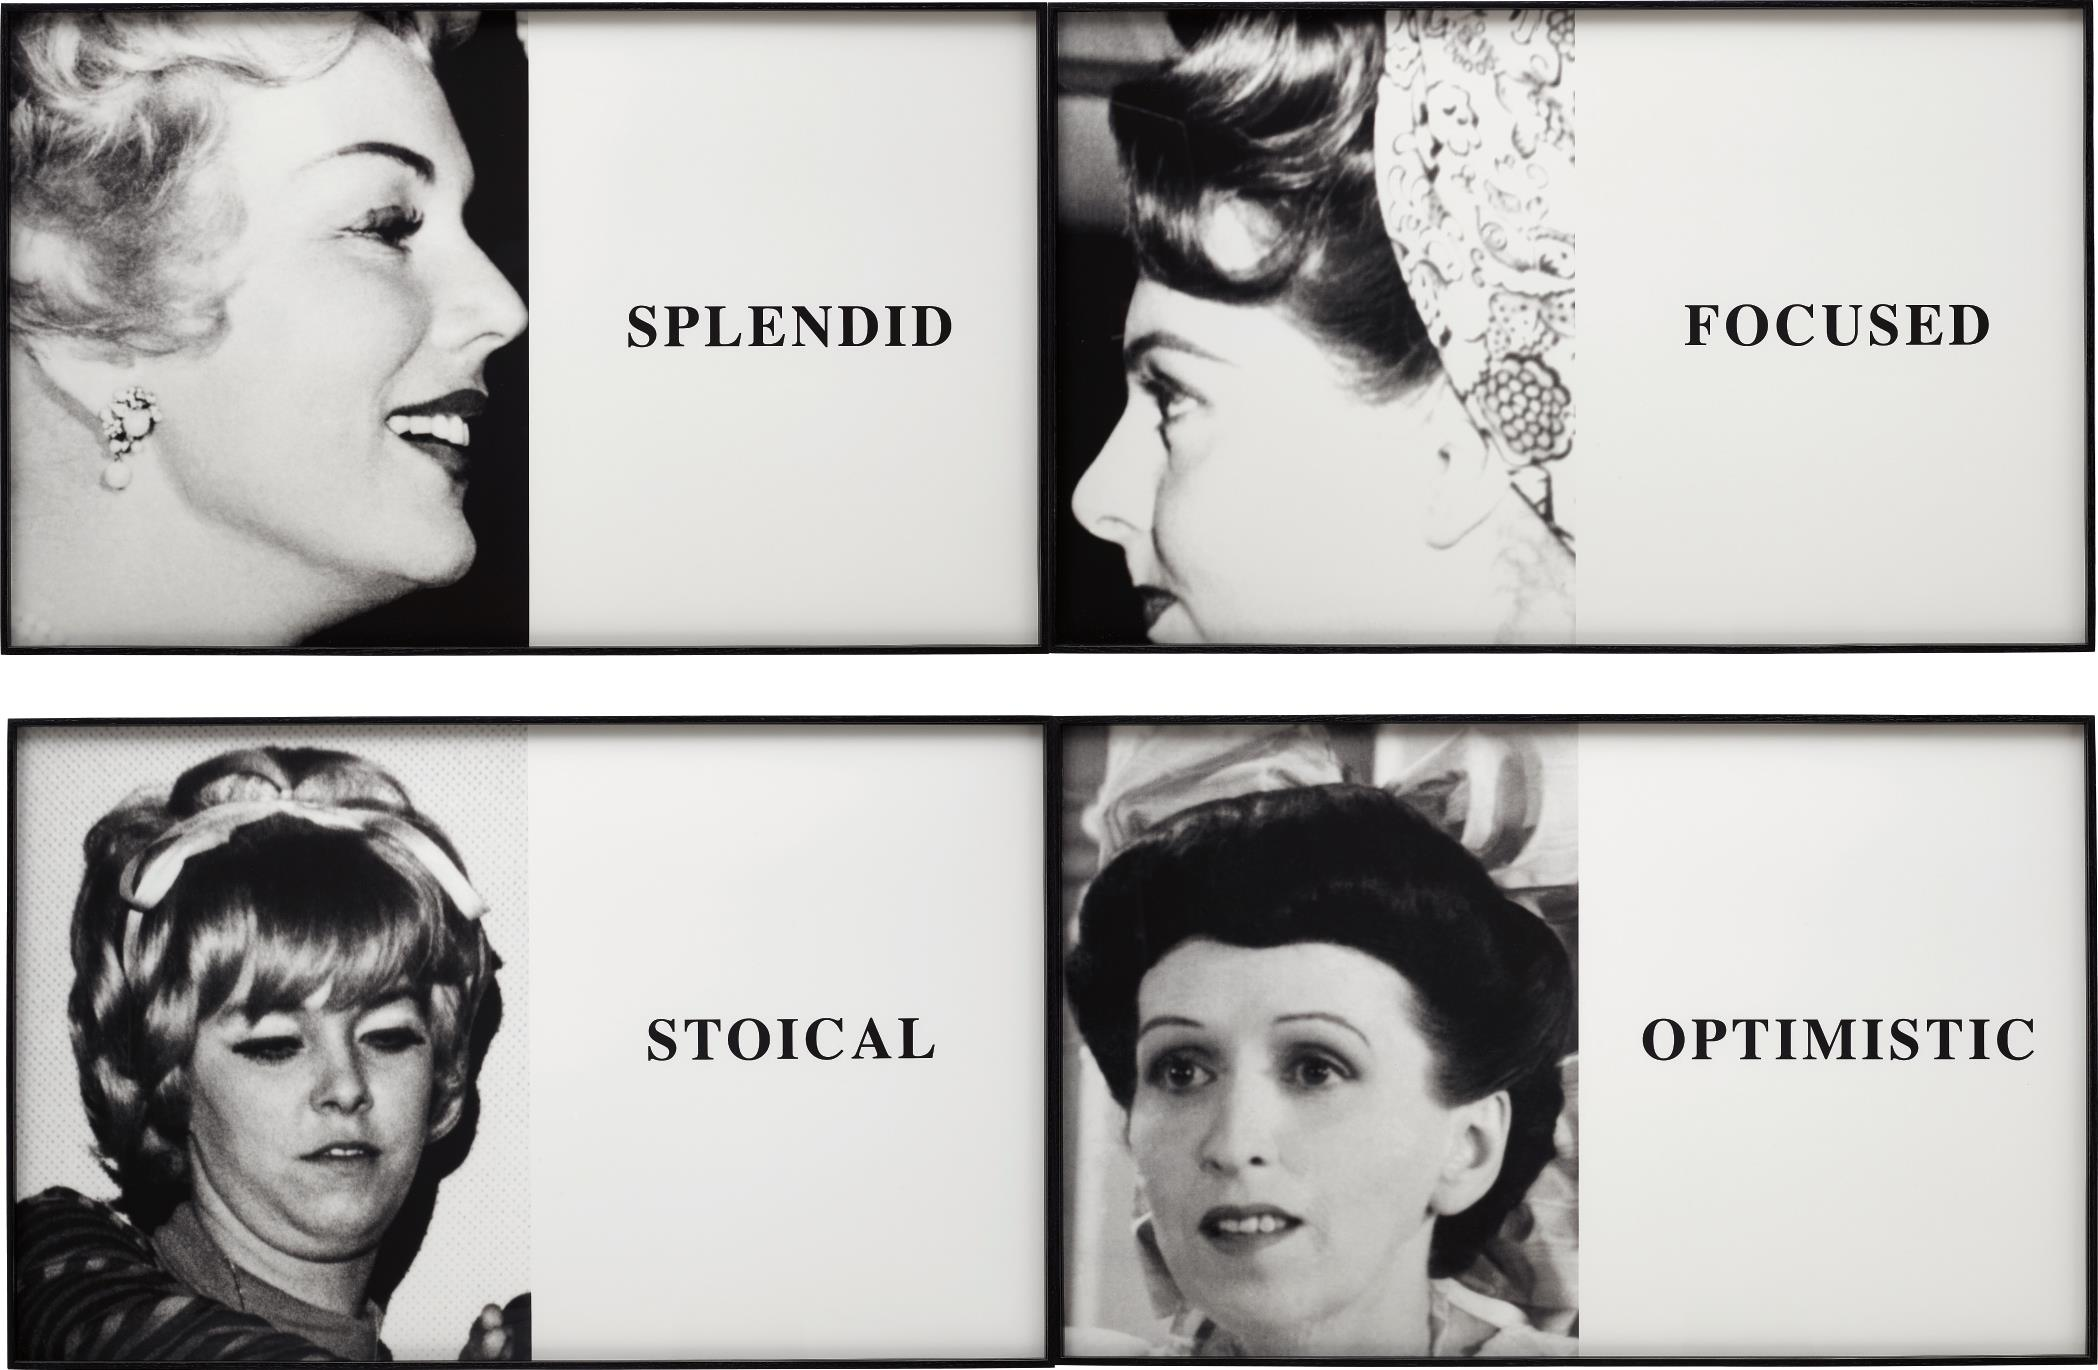 John Baldessari-Prima Facie: Splendid/Focused/Stoical/Optimistic-2005